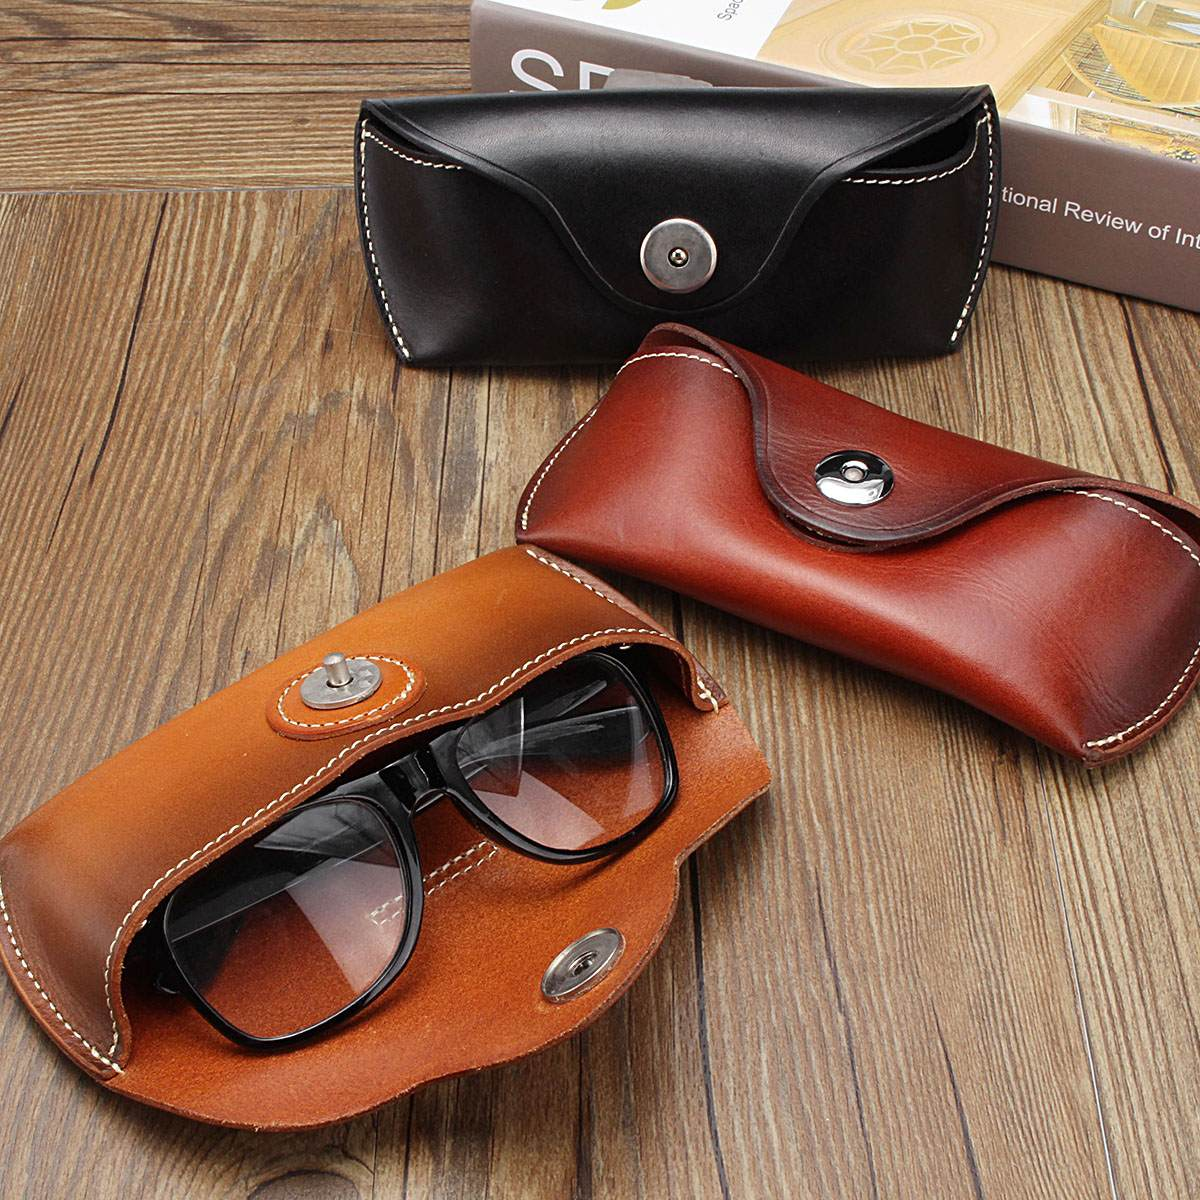 Cow Leather Eye Glasses Bag For Eyeglass High Quality Handmade Causal Jeans Belt Glasses Case Sunglasses Protector Case Black